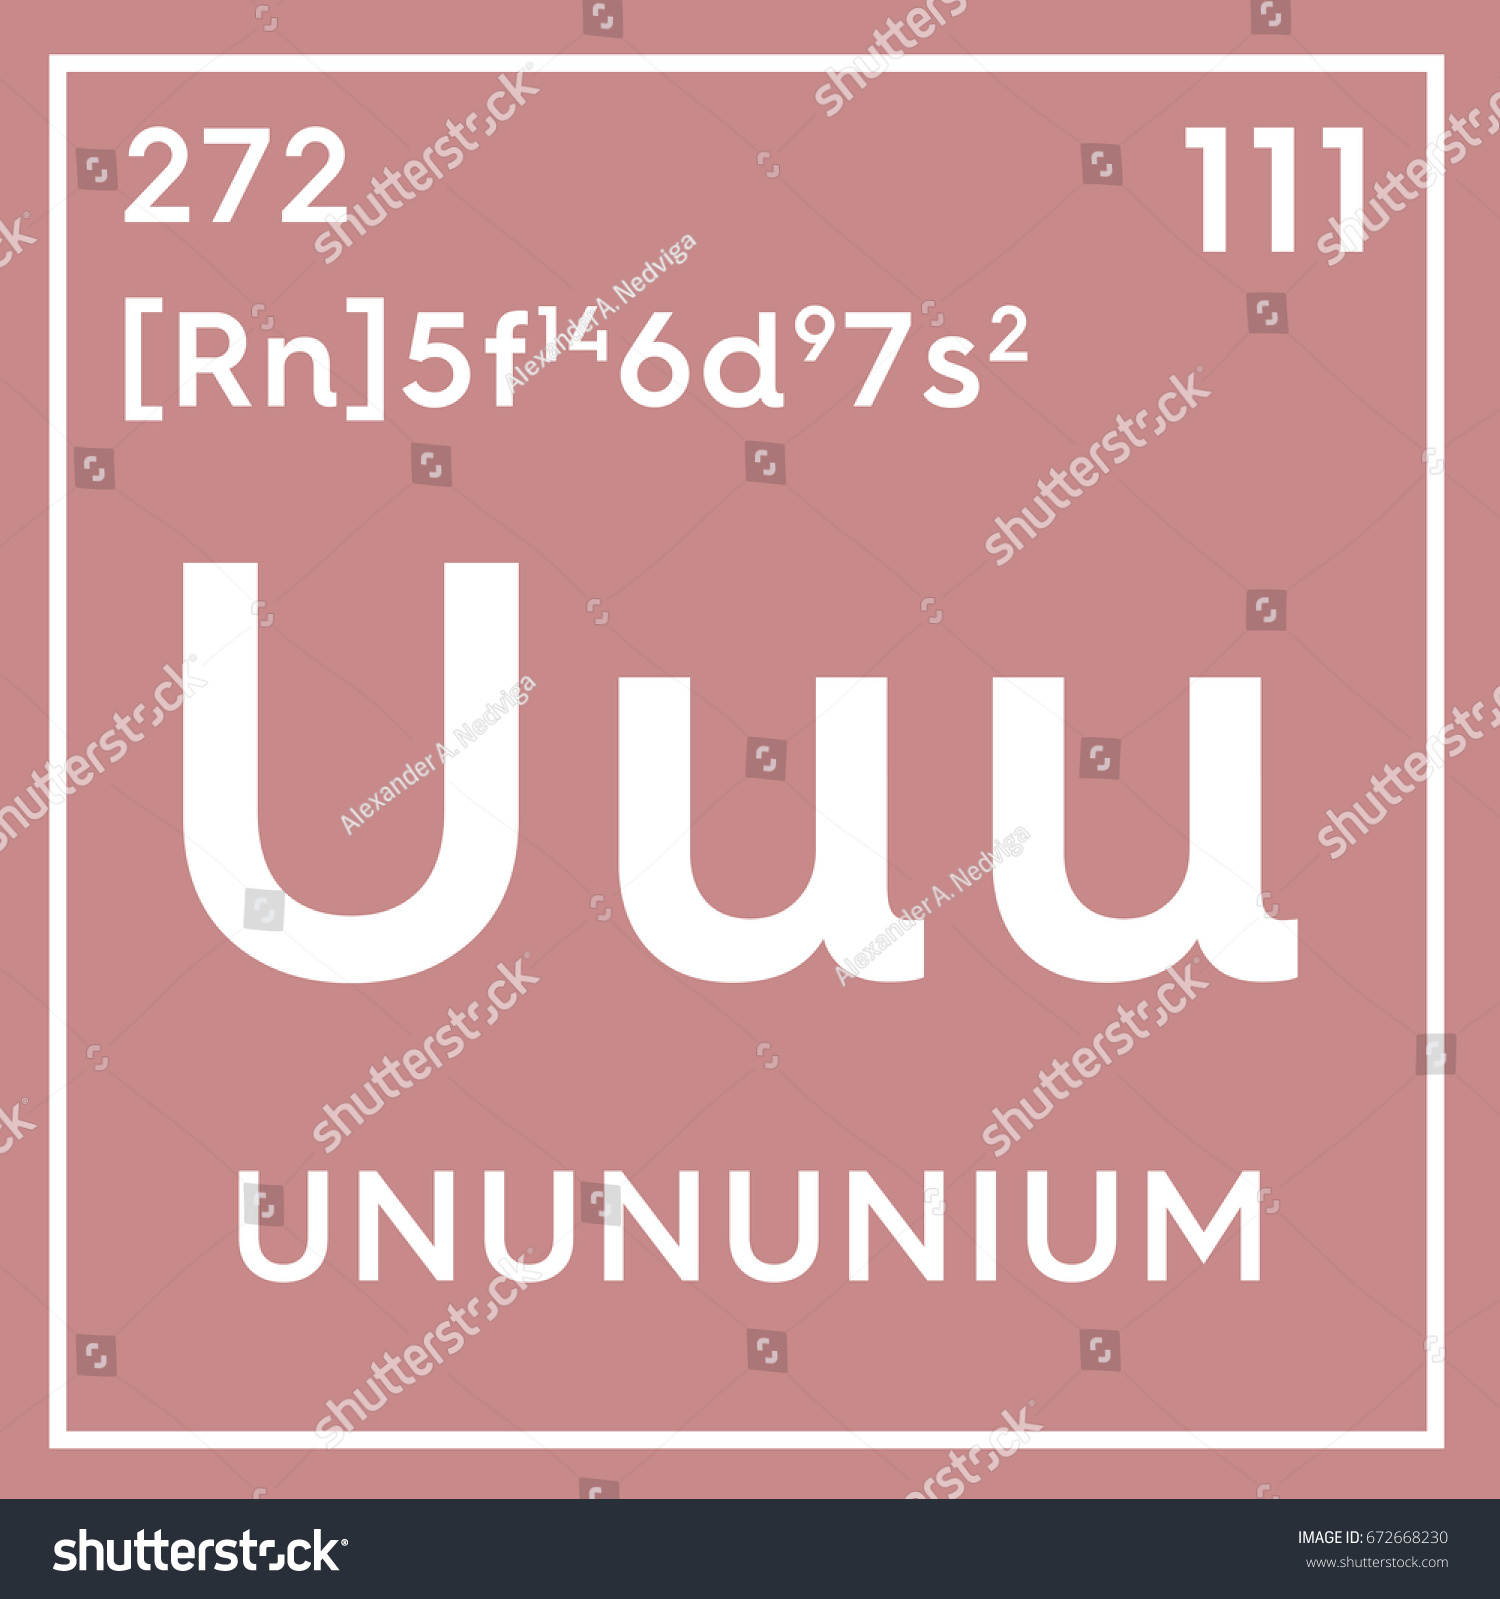 Unununium transition metals chemical element mendeleevs stock chemical element of mendeleevs periodic table unununium in square cube gamestrikefo Gallery